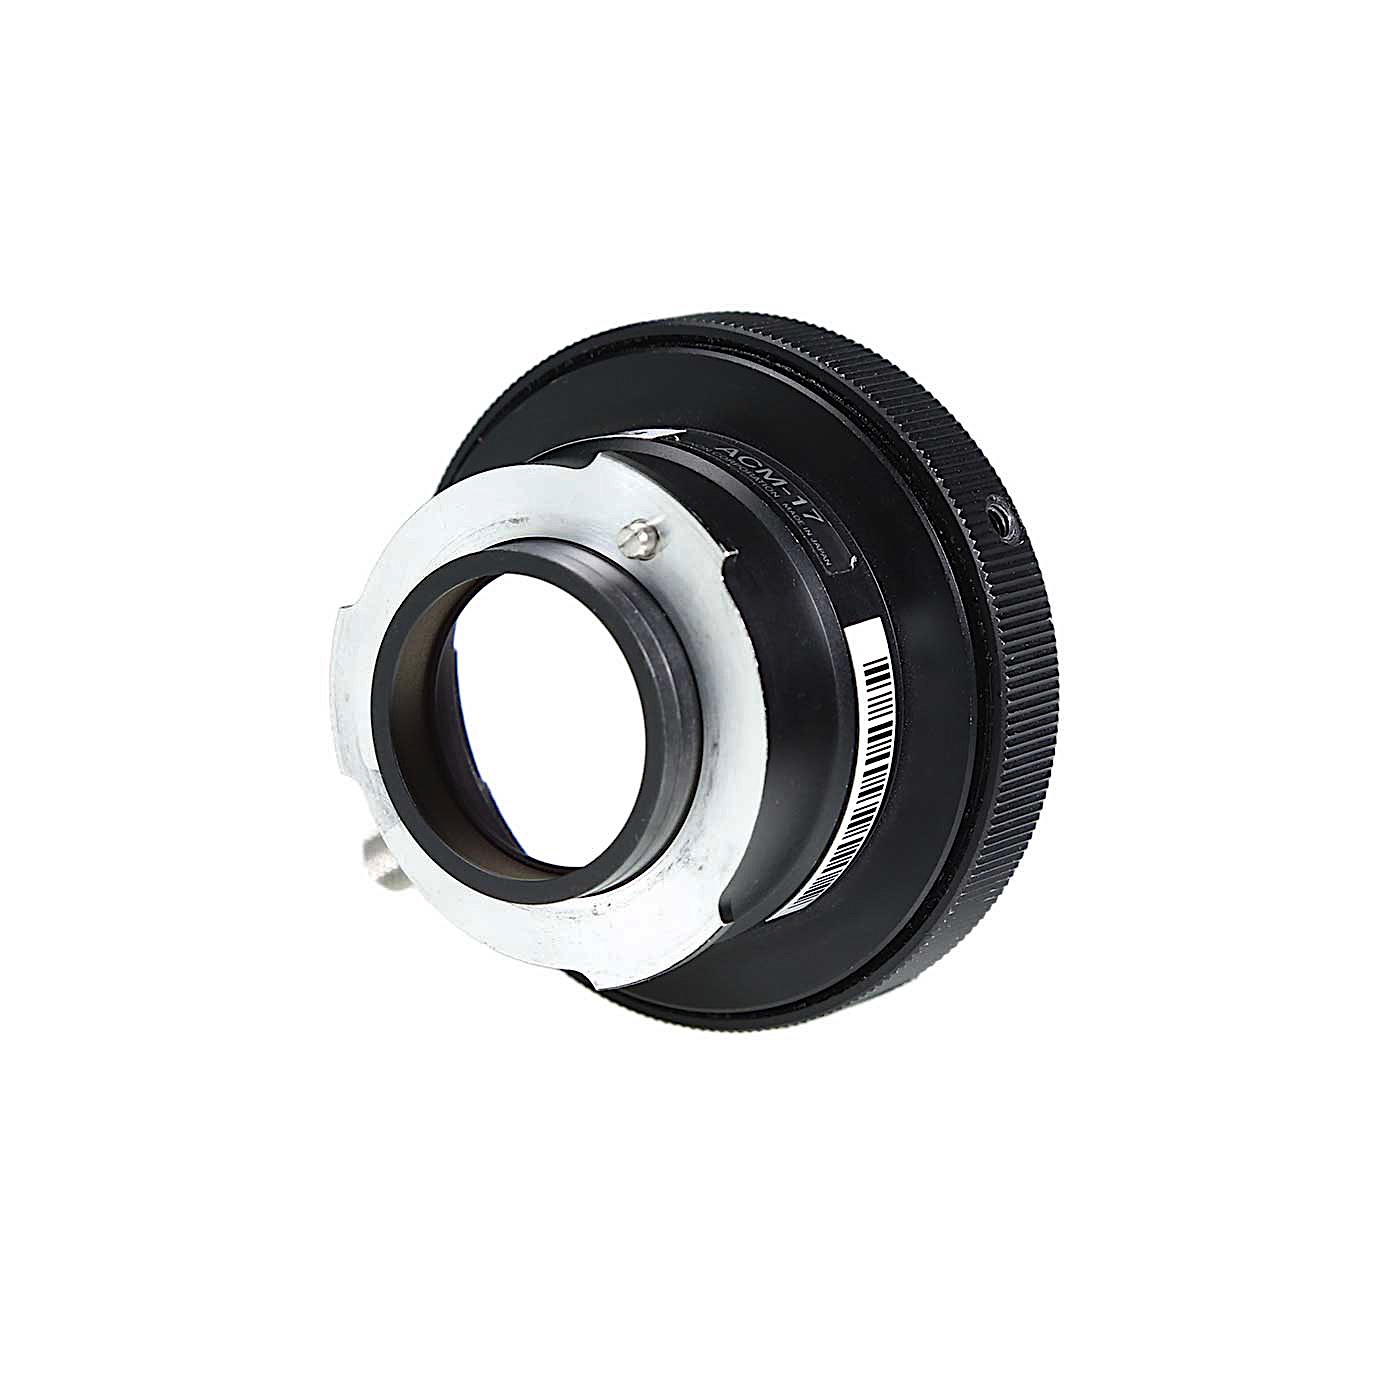 Fujinon ACM-17 1/3in to 2/3in Conversion Adapter